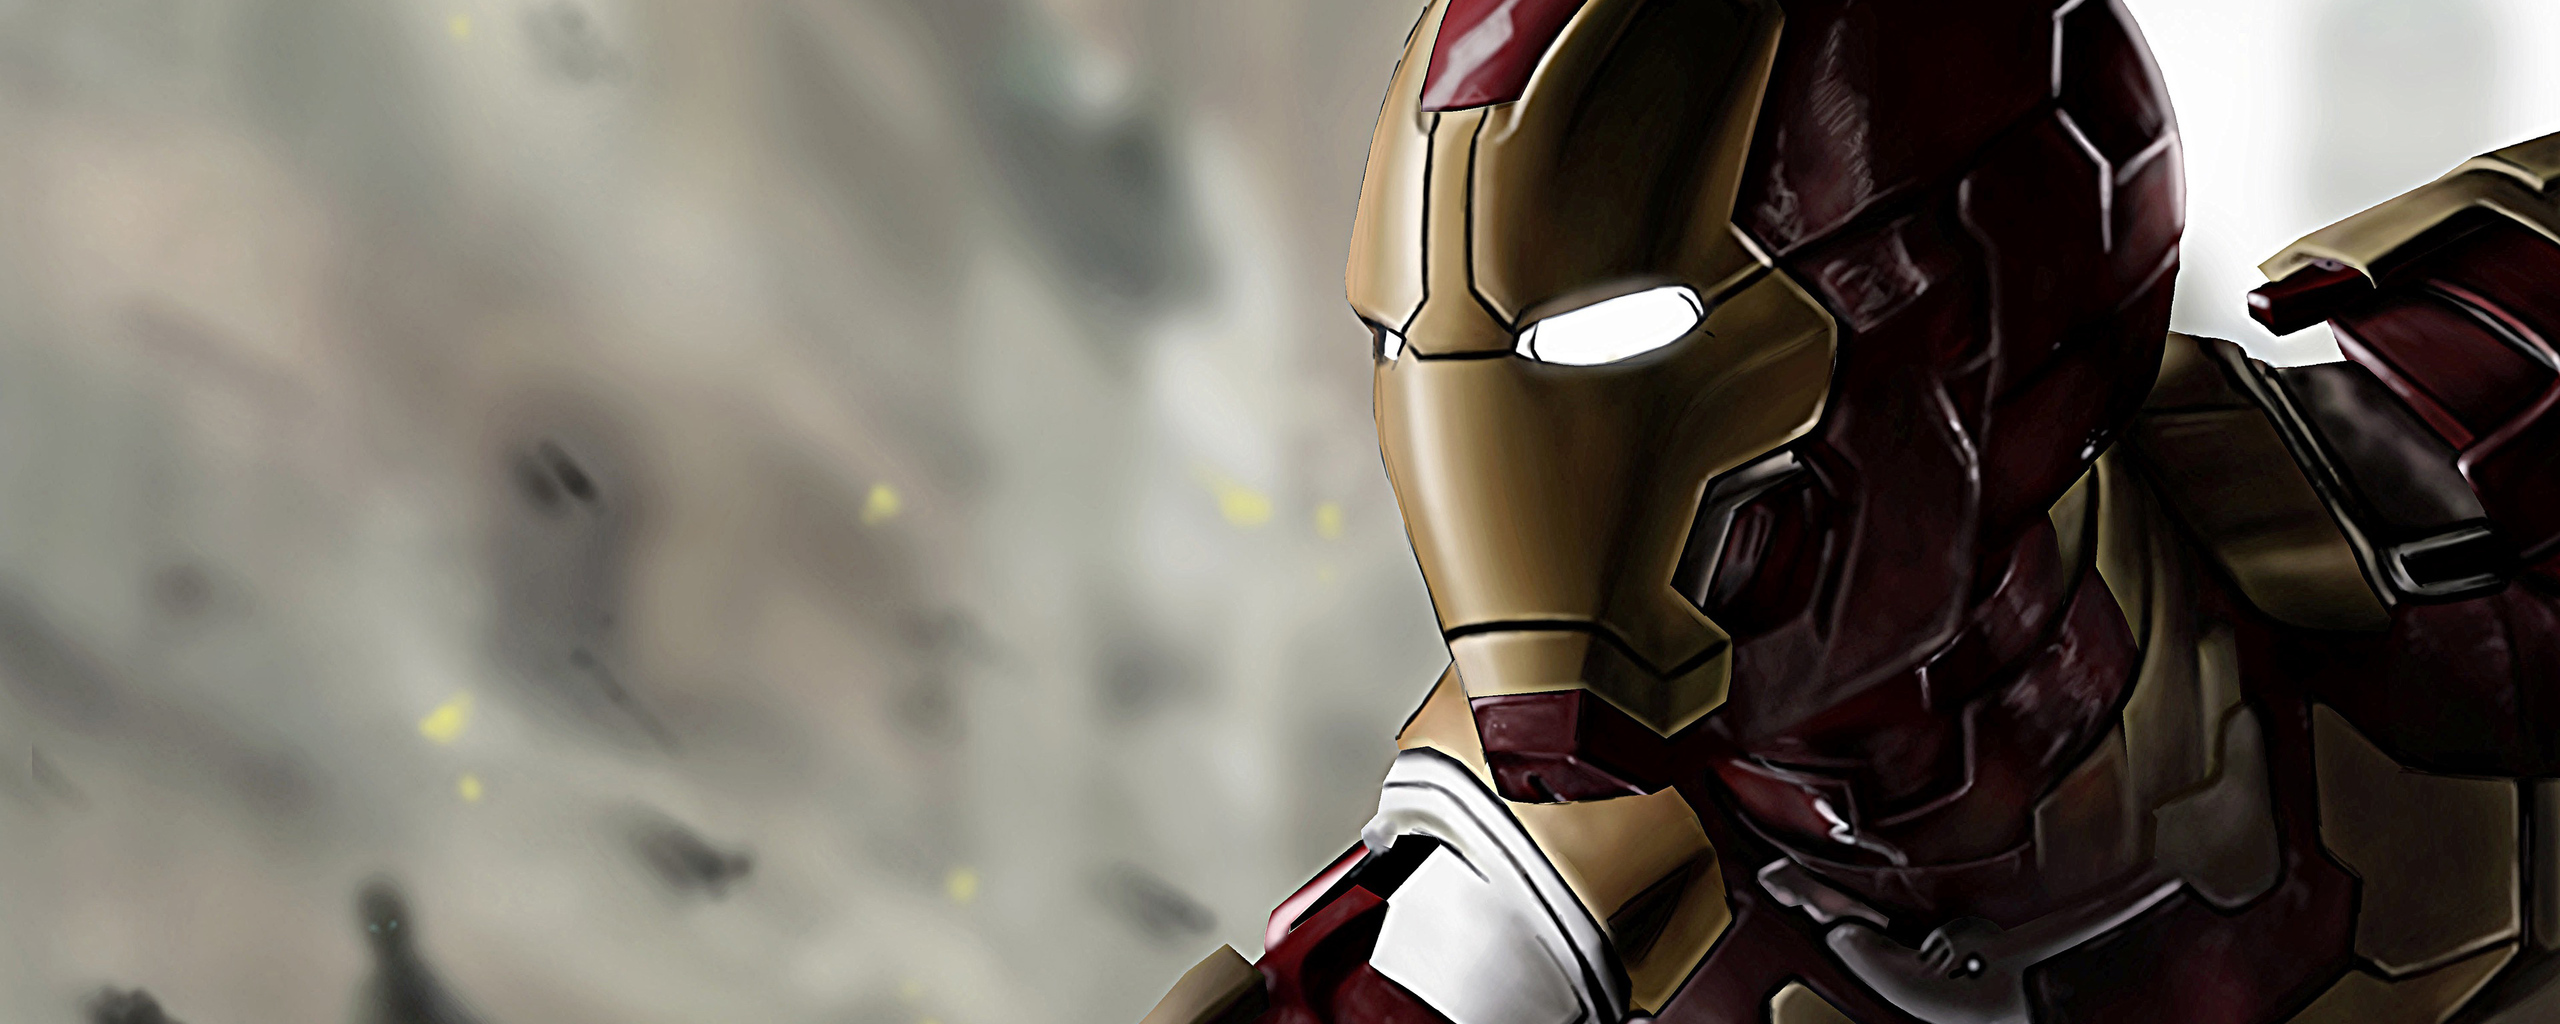 iron-man-in-avengers-age-of-ultron-wh.jpg